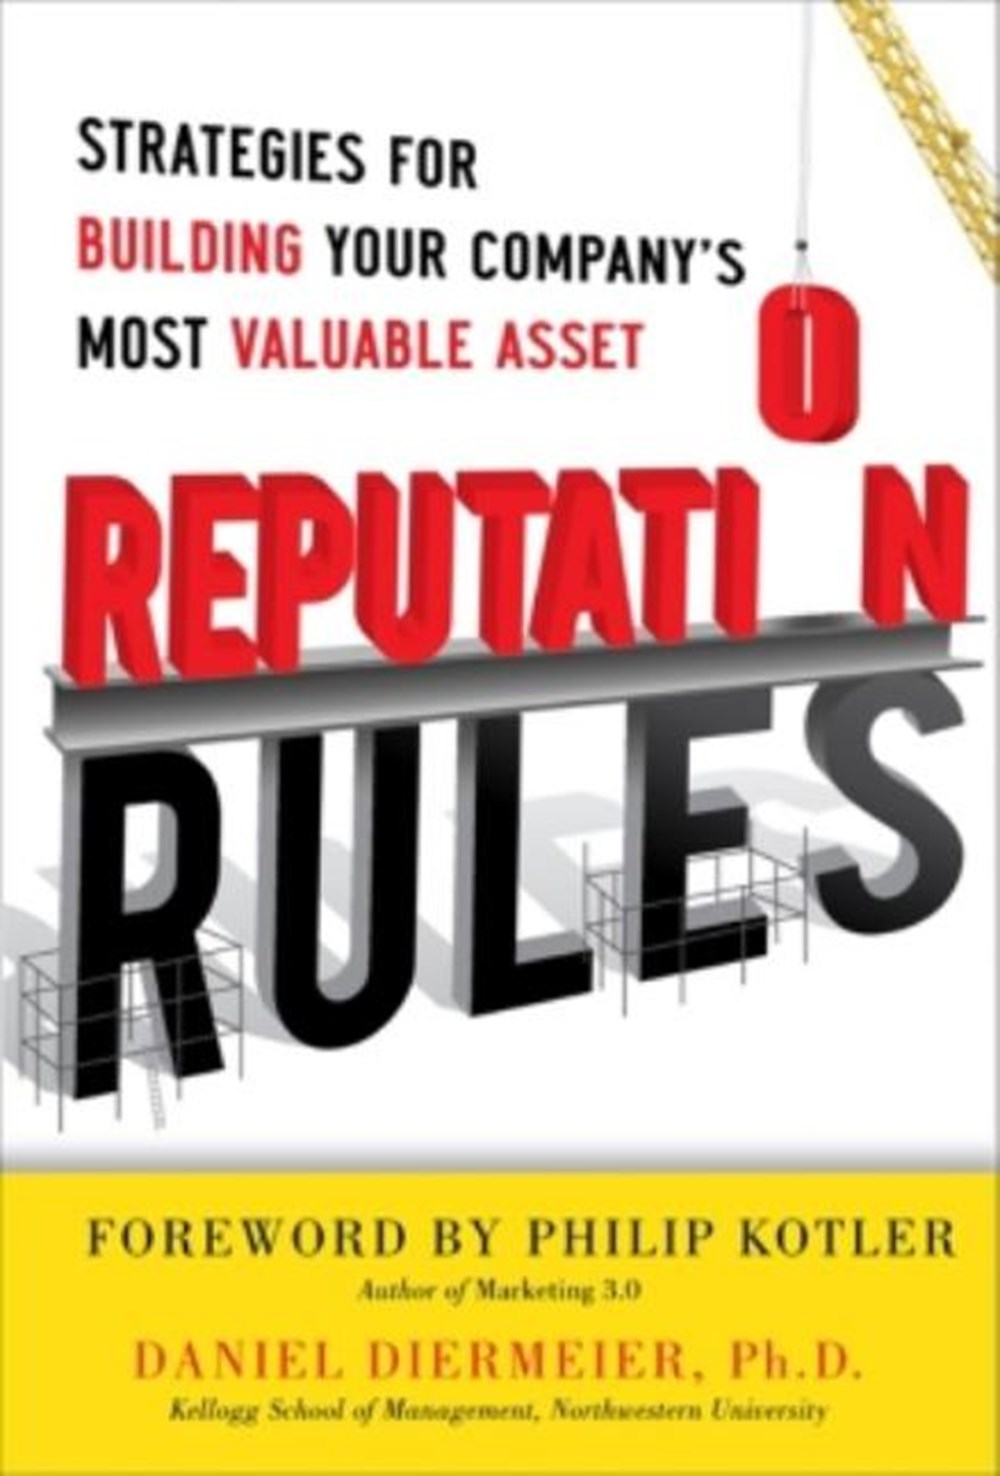 Reputation Rules Strategies for Building Your Company's Most Valuable Asset